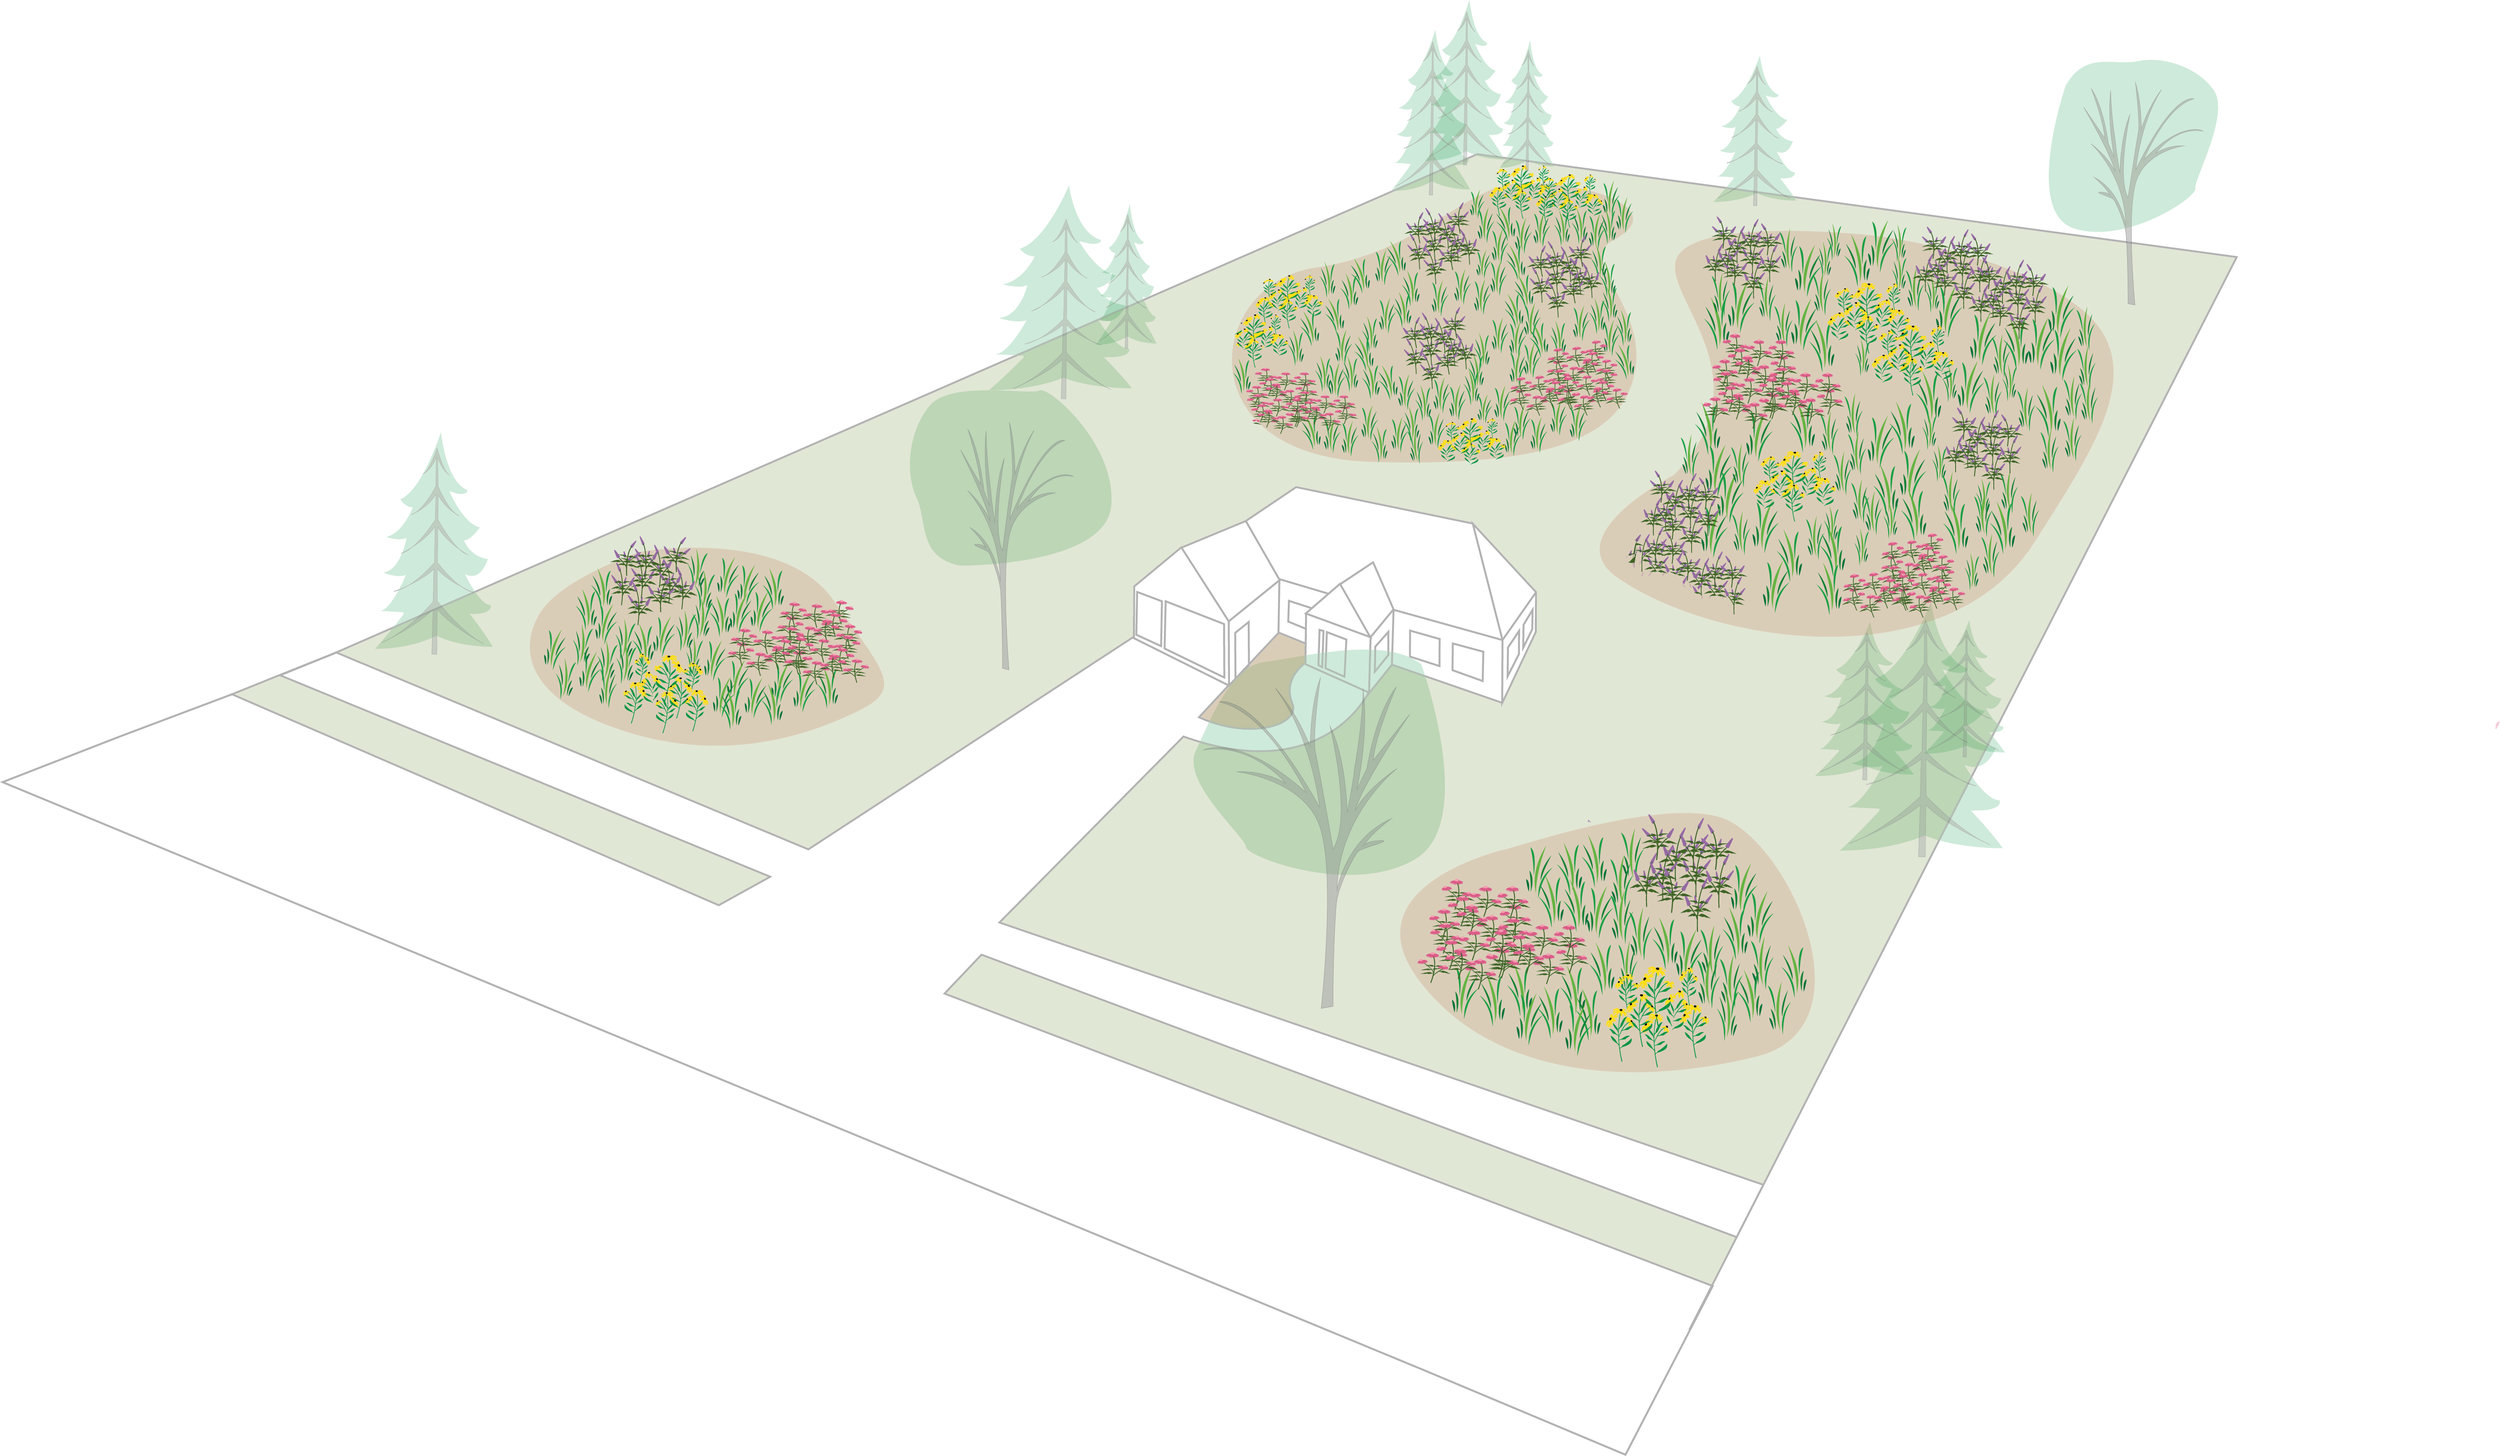 Most turf grasses are high maintenance--requiring watering, fertilizing, herbicides, and mowing. Despite this, most yards are seeded with turf grass. Prairie, or pollinator, plots give us a wonderful alternative to the exclusively turf grass landscape. Illustration by Steve Heymans.